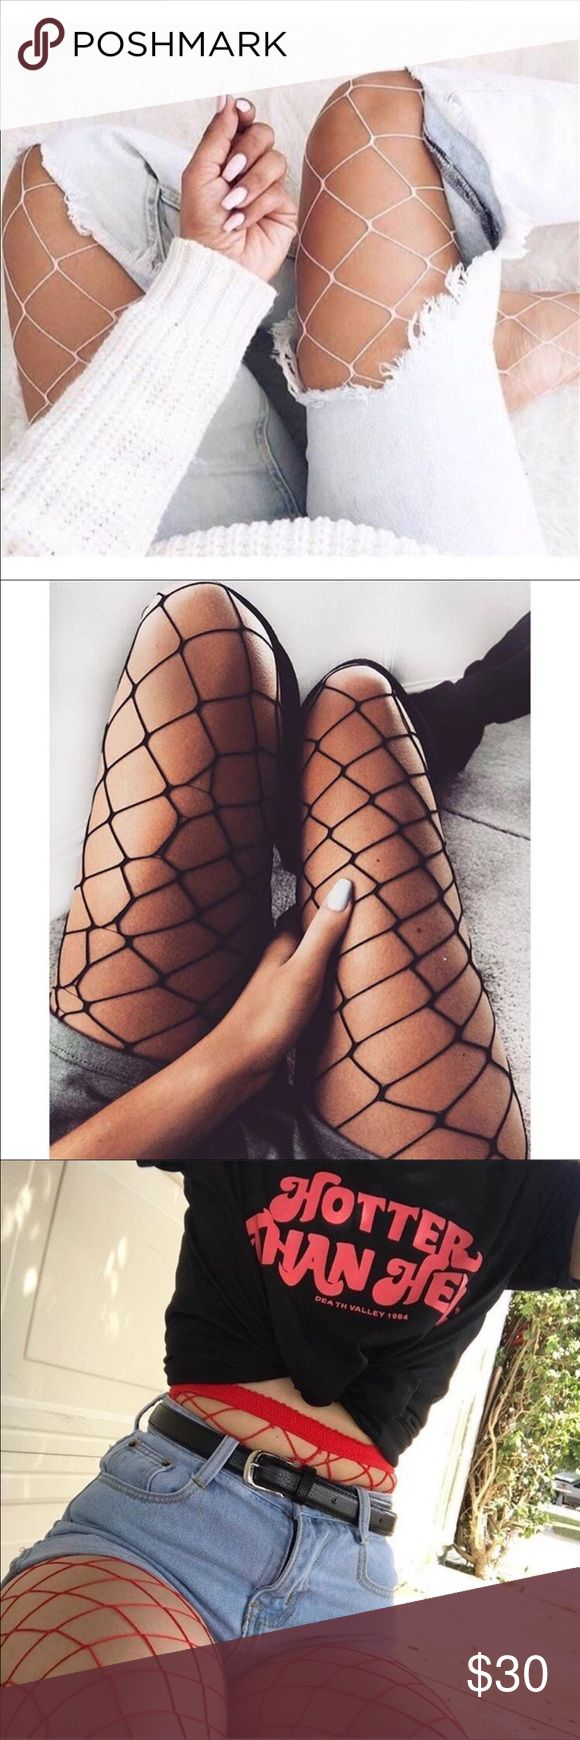 FISHNET BUNDLE ❗️✔️❕ Fishnet stocking bundle, GREAT DEAL! Get all 3  color fishnet stockings (Red, Black, and White) for $30.   🚫 No trades. 🚫 Same or next day shipping (typically) ✈️ Tagged brand for exposure Fashion Nova Accessories Hosiery & Socks